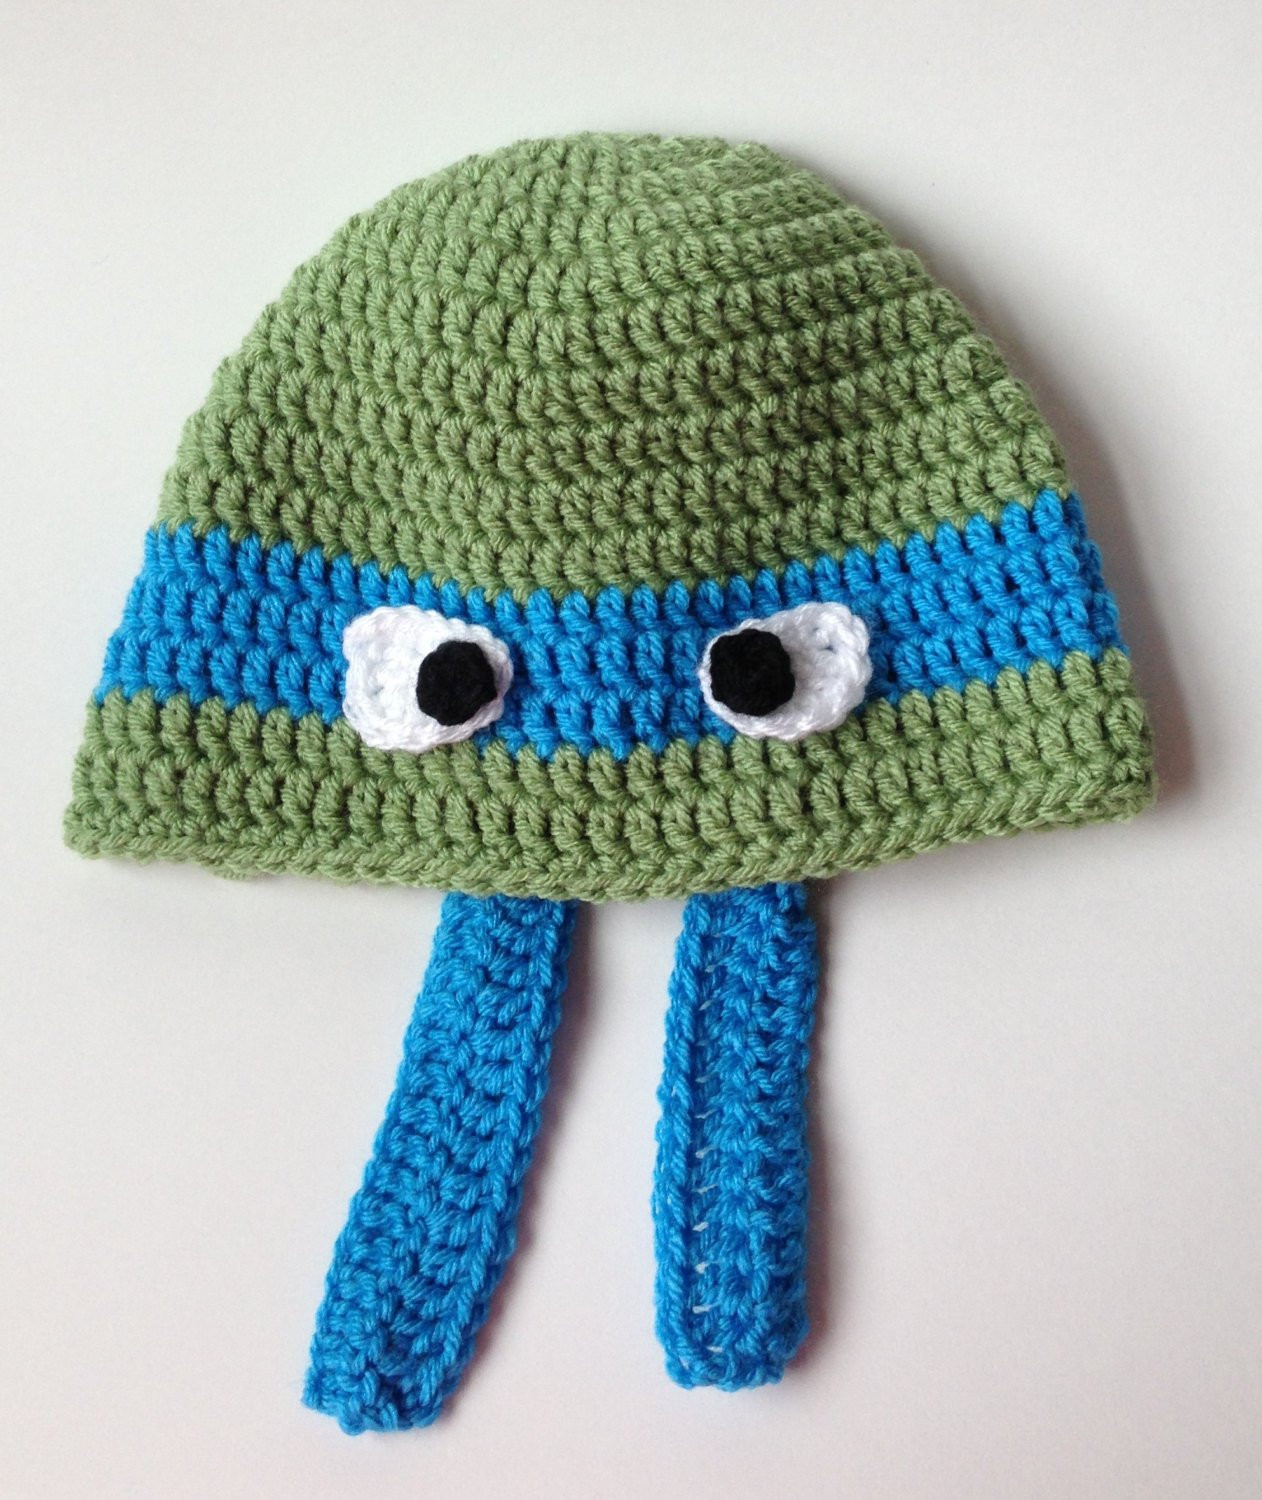 Crochet Ninja Turtle Hat New Ninja Turtle Hat Crochet Hat Ninja Turtle by Twopeasinapodco Of Innovative 46 Pictures Crochet Ninja Turtle Hat